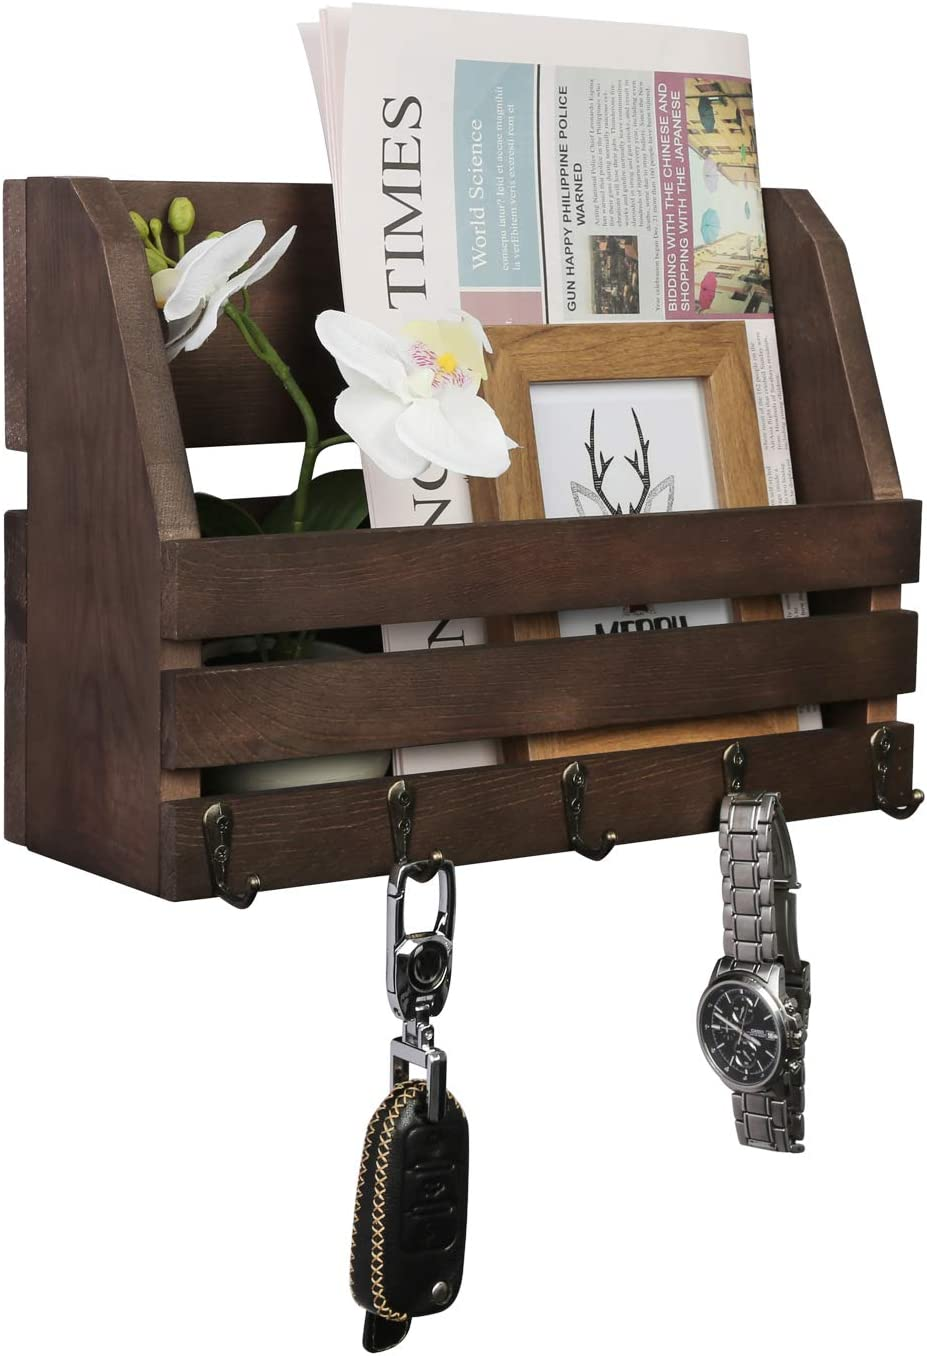 Pine 3-Tier Key Hooks Rustic Wood Wall Storage And Mail Sorter With Key Rack